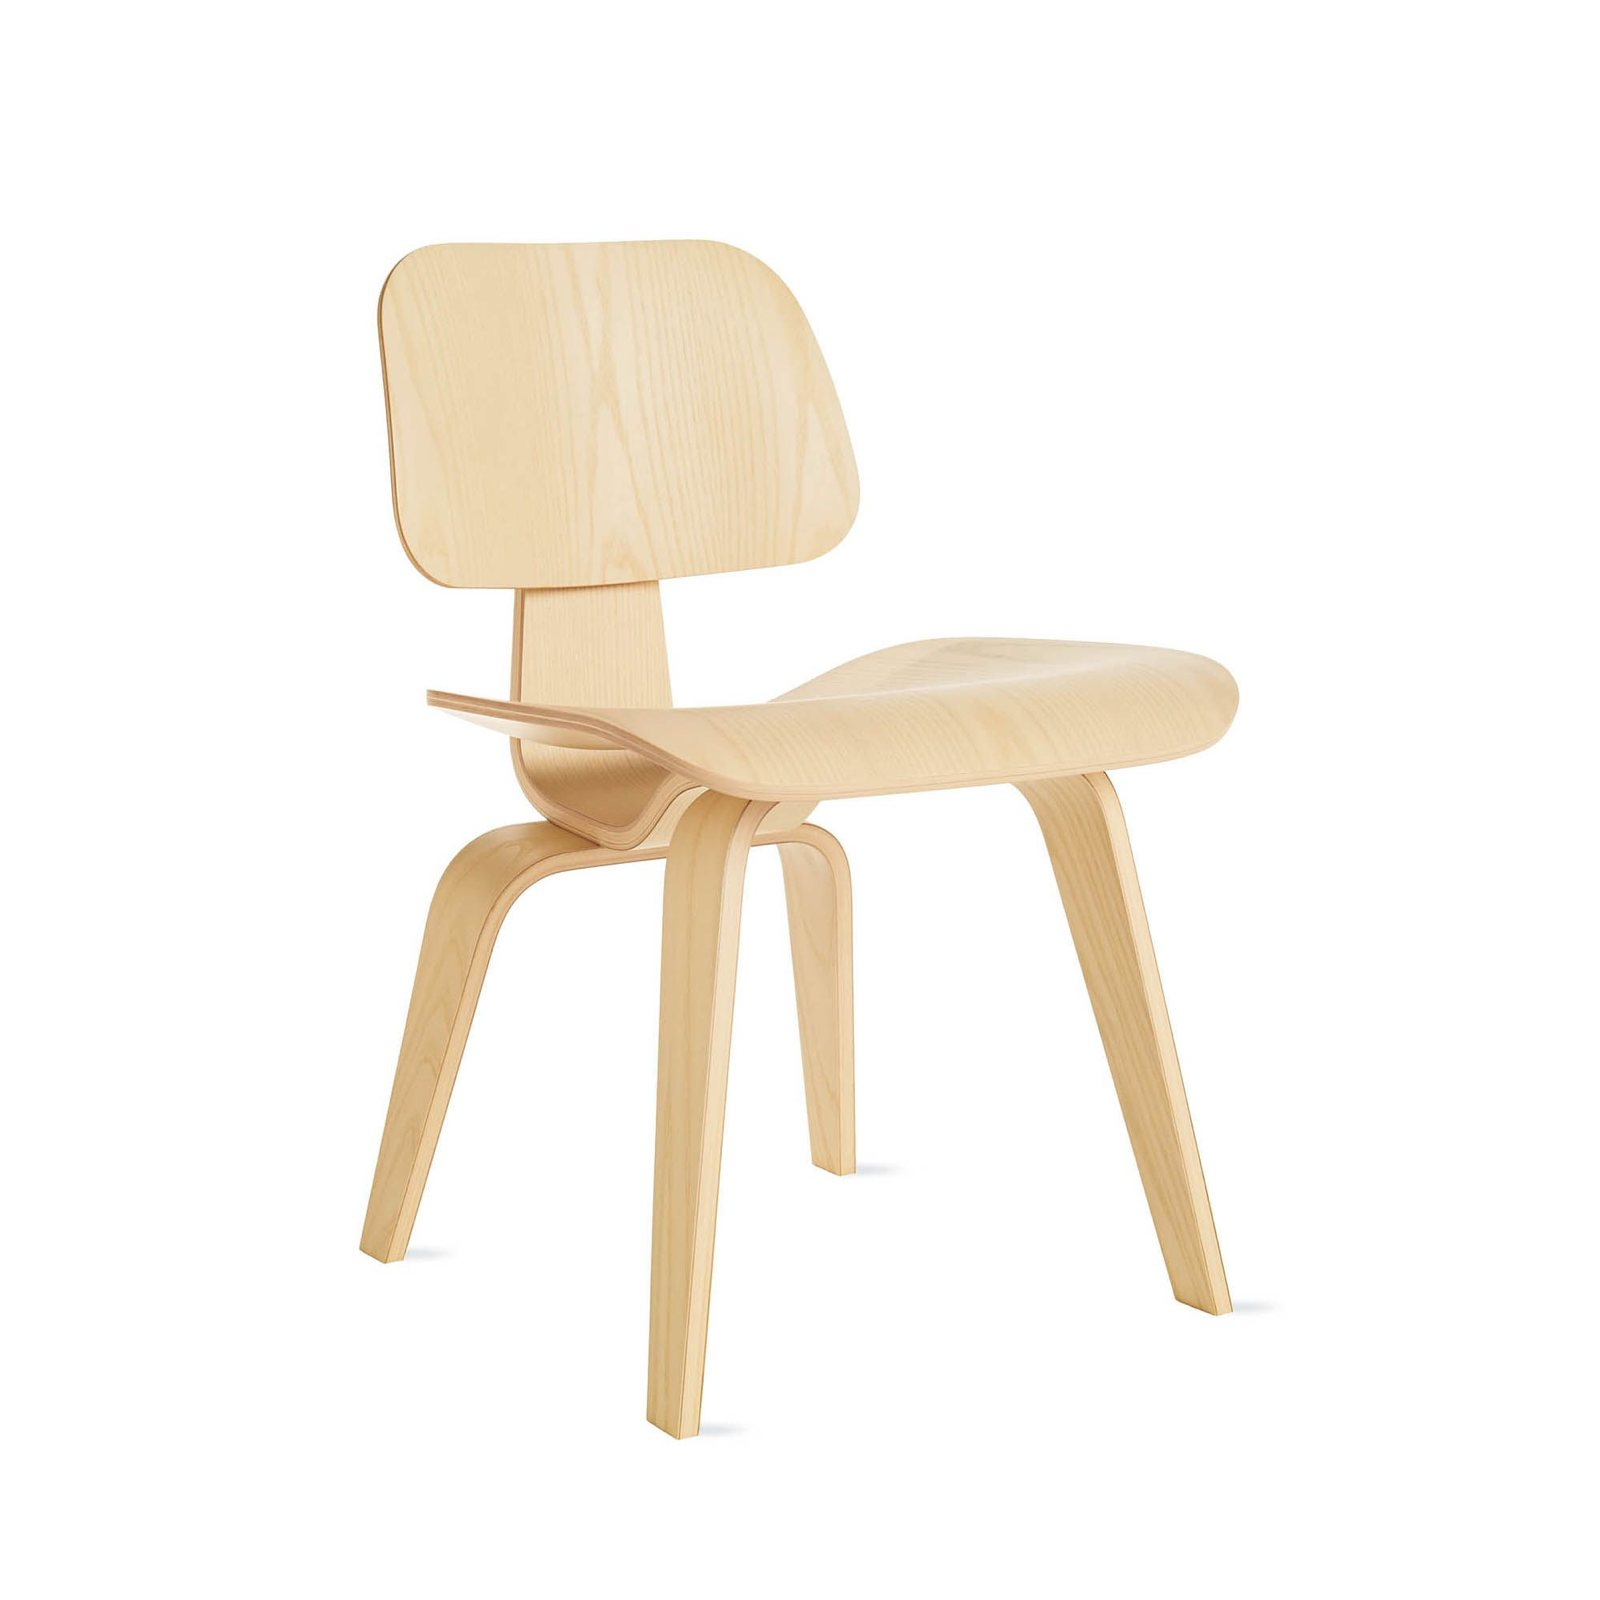 Eames Molded Plywood Dining Chair Wood Base by Charles  : eames molded plywood dining chair wood base 6 25317 from upinteriors.com size 1600 x 1600 jpeg 60kB